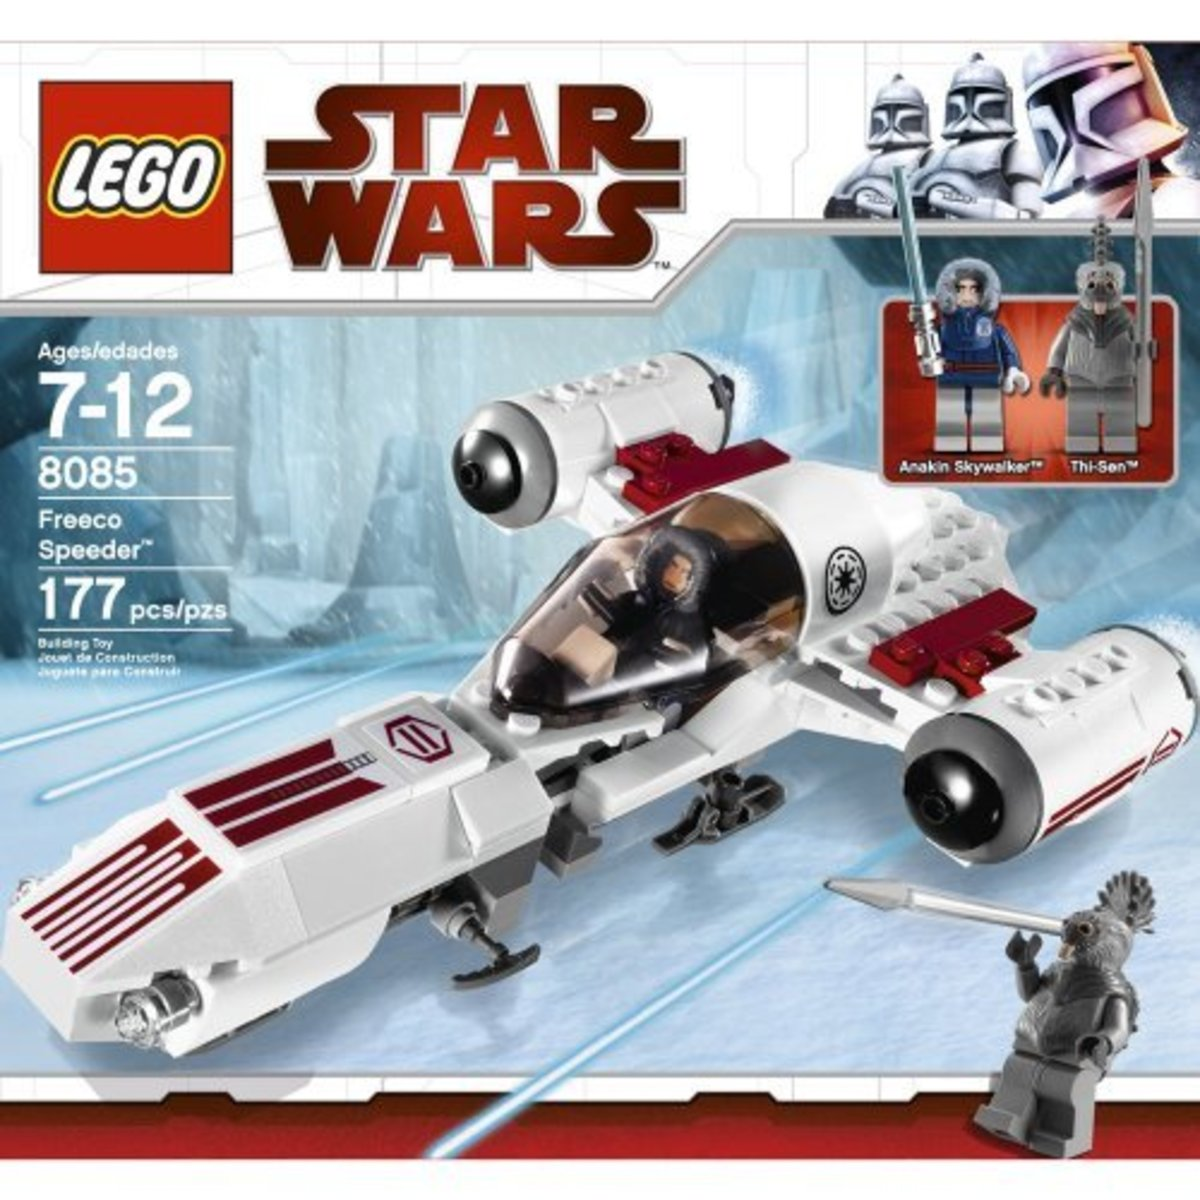 LEGO Star Wars Freeco Speeder 8085 Box